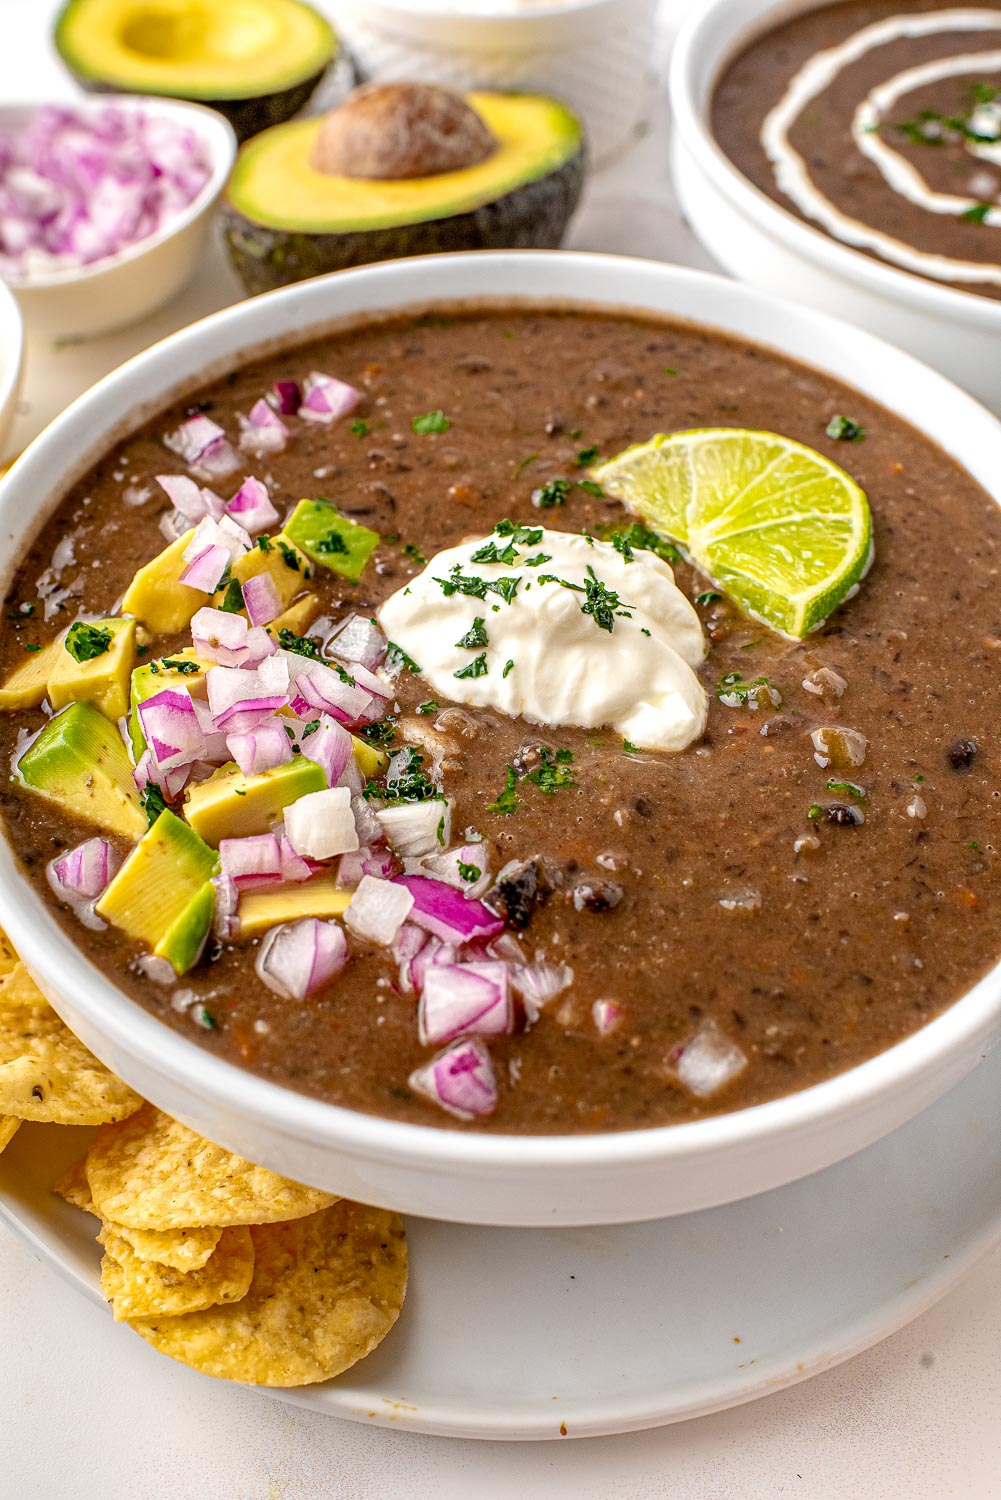 A close up picture of Black Bean Soup in a white bowl.